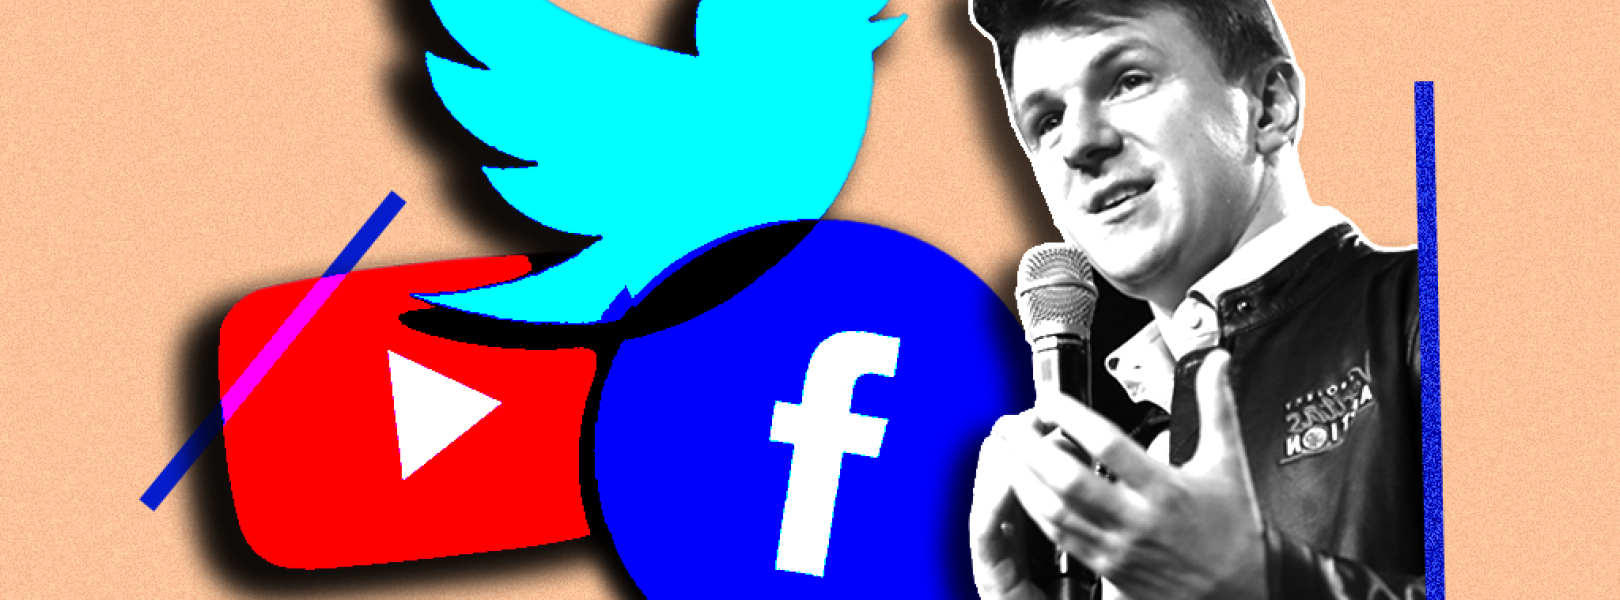 James O'Keefe and the logos for YouTube, Twitter, and Facebook